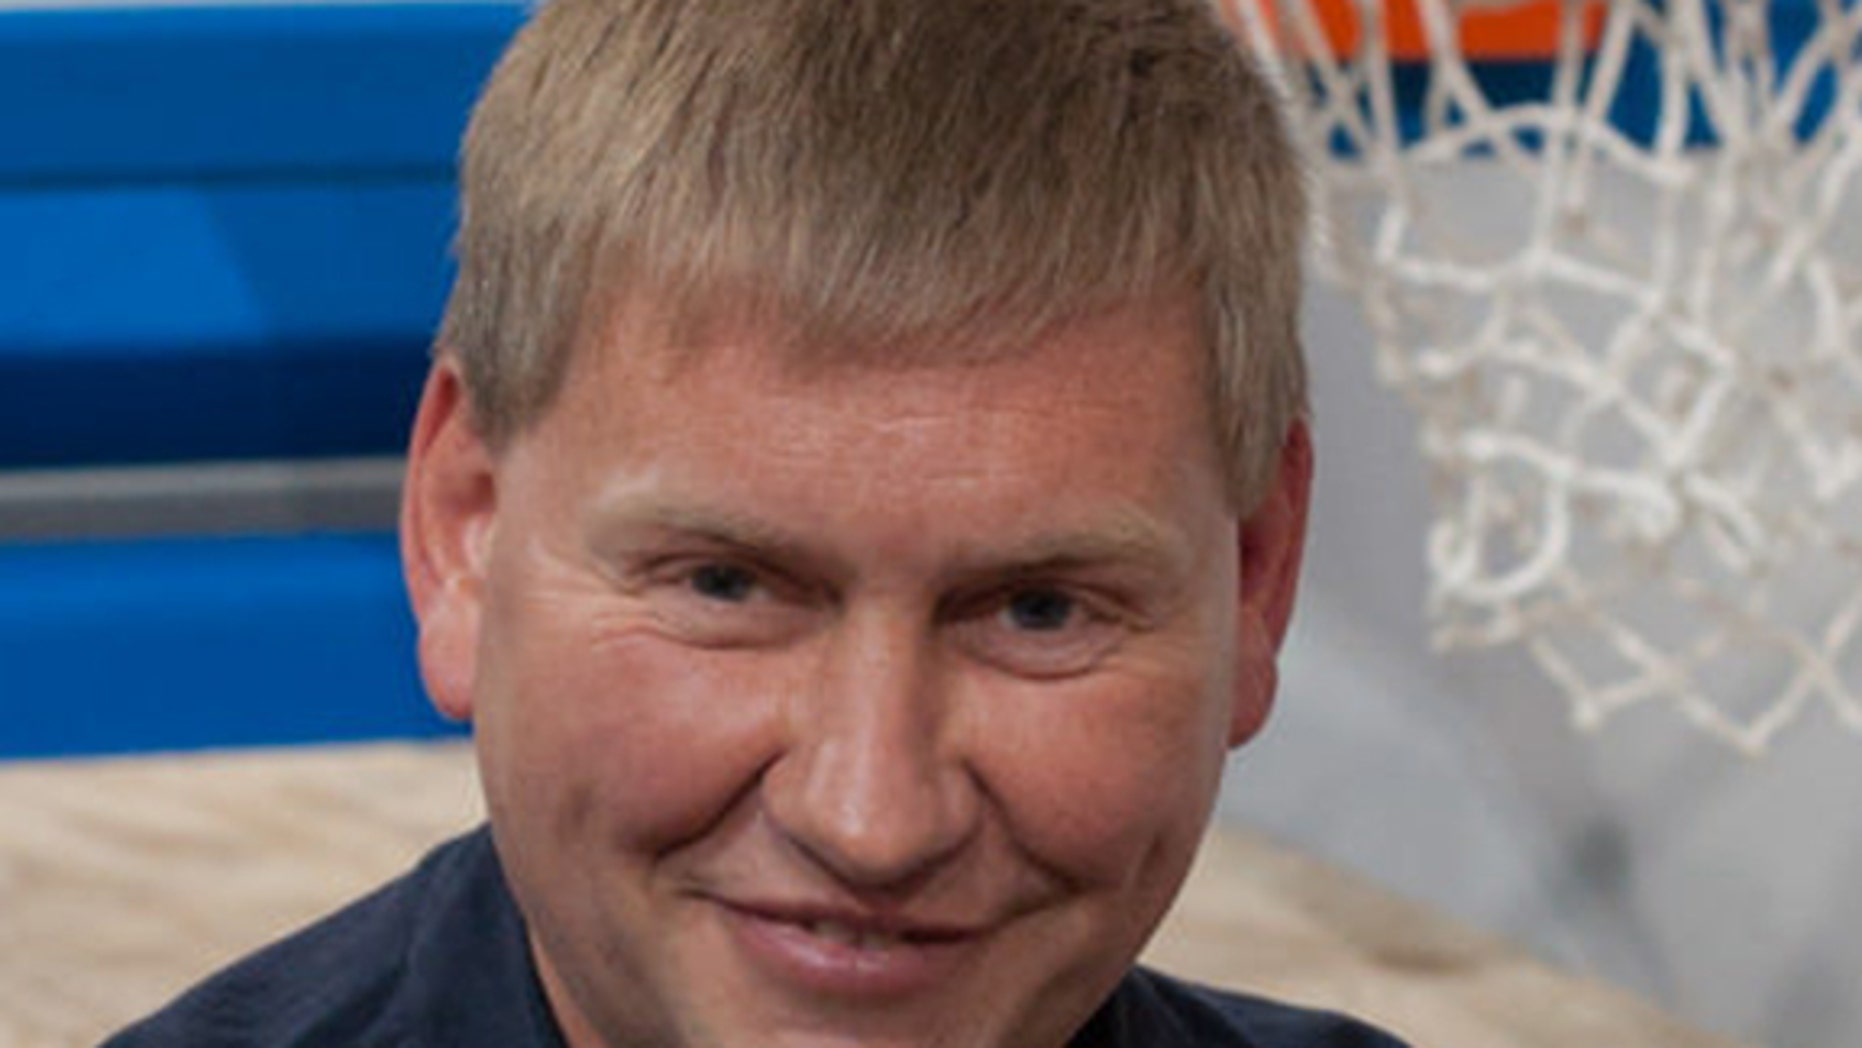 Geir Helgemo, the world No.1 ranked bridge player, has been suspended for a year after he tested positive for two banned substances.